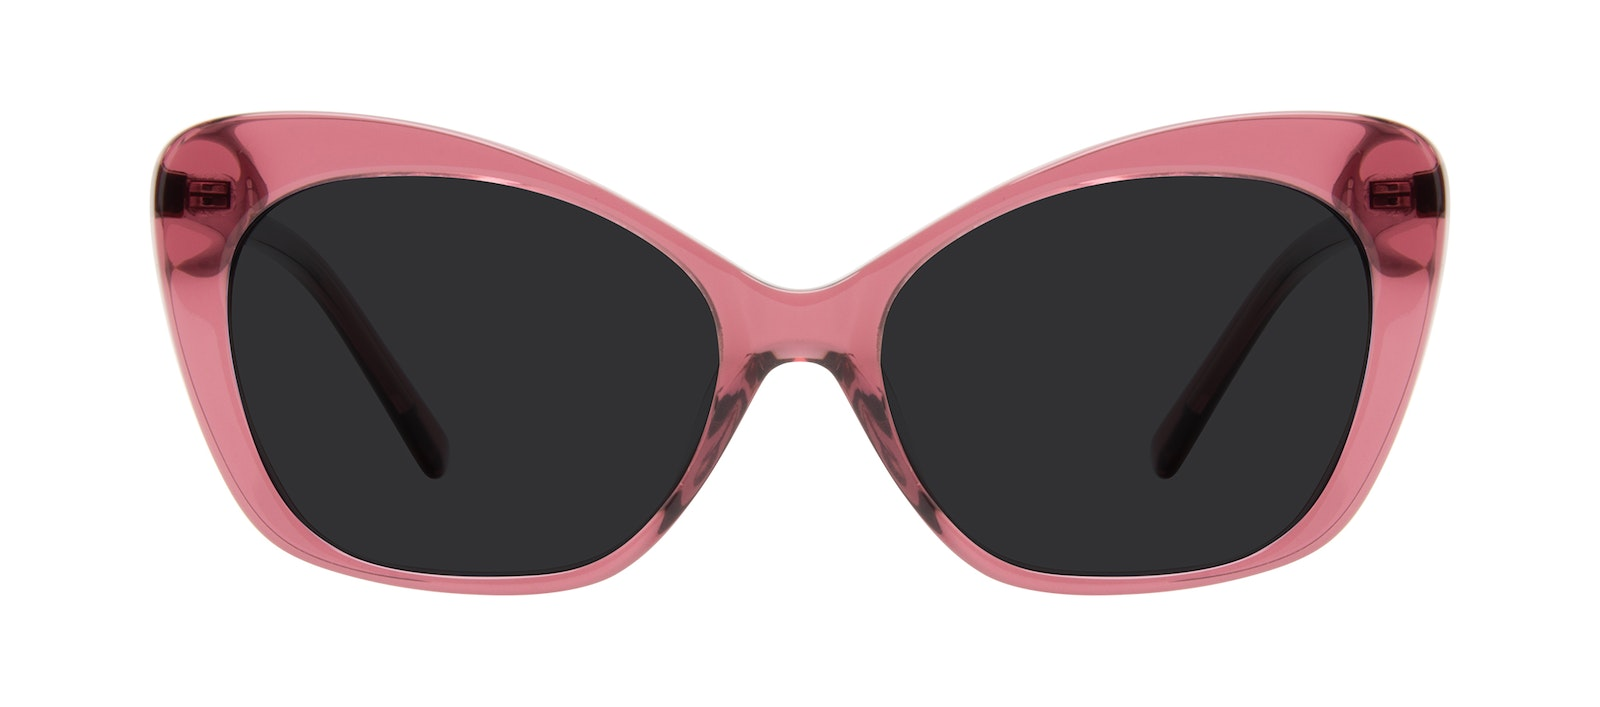 Affordable Fashion Glasses Cat Eye Sunglasses Women Obvious Orchid Front